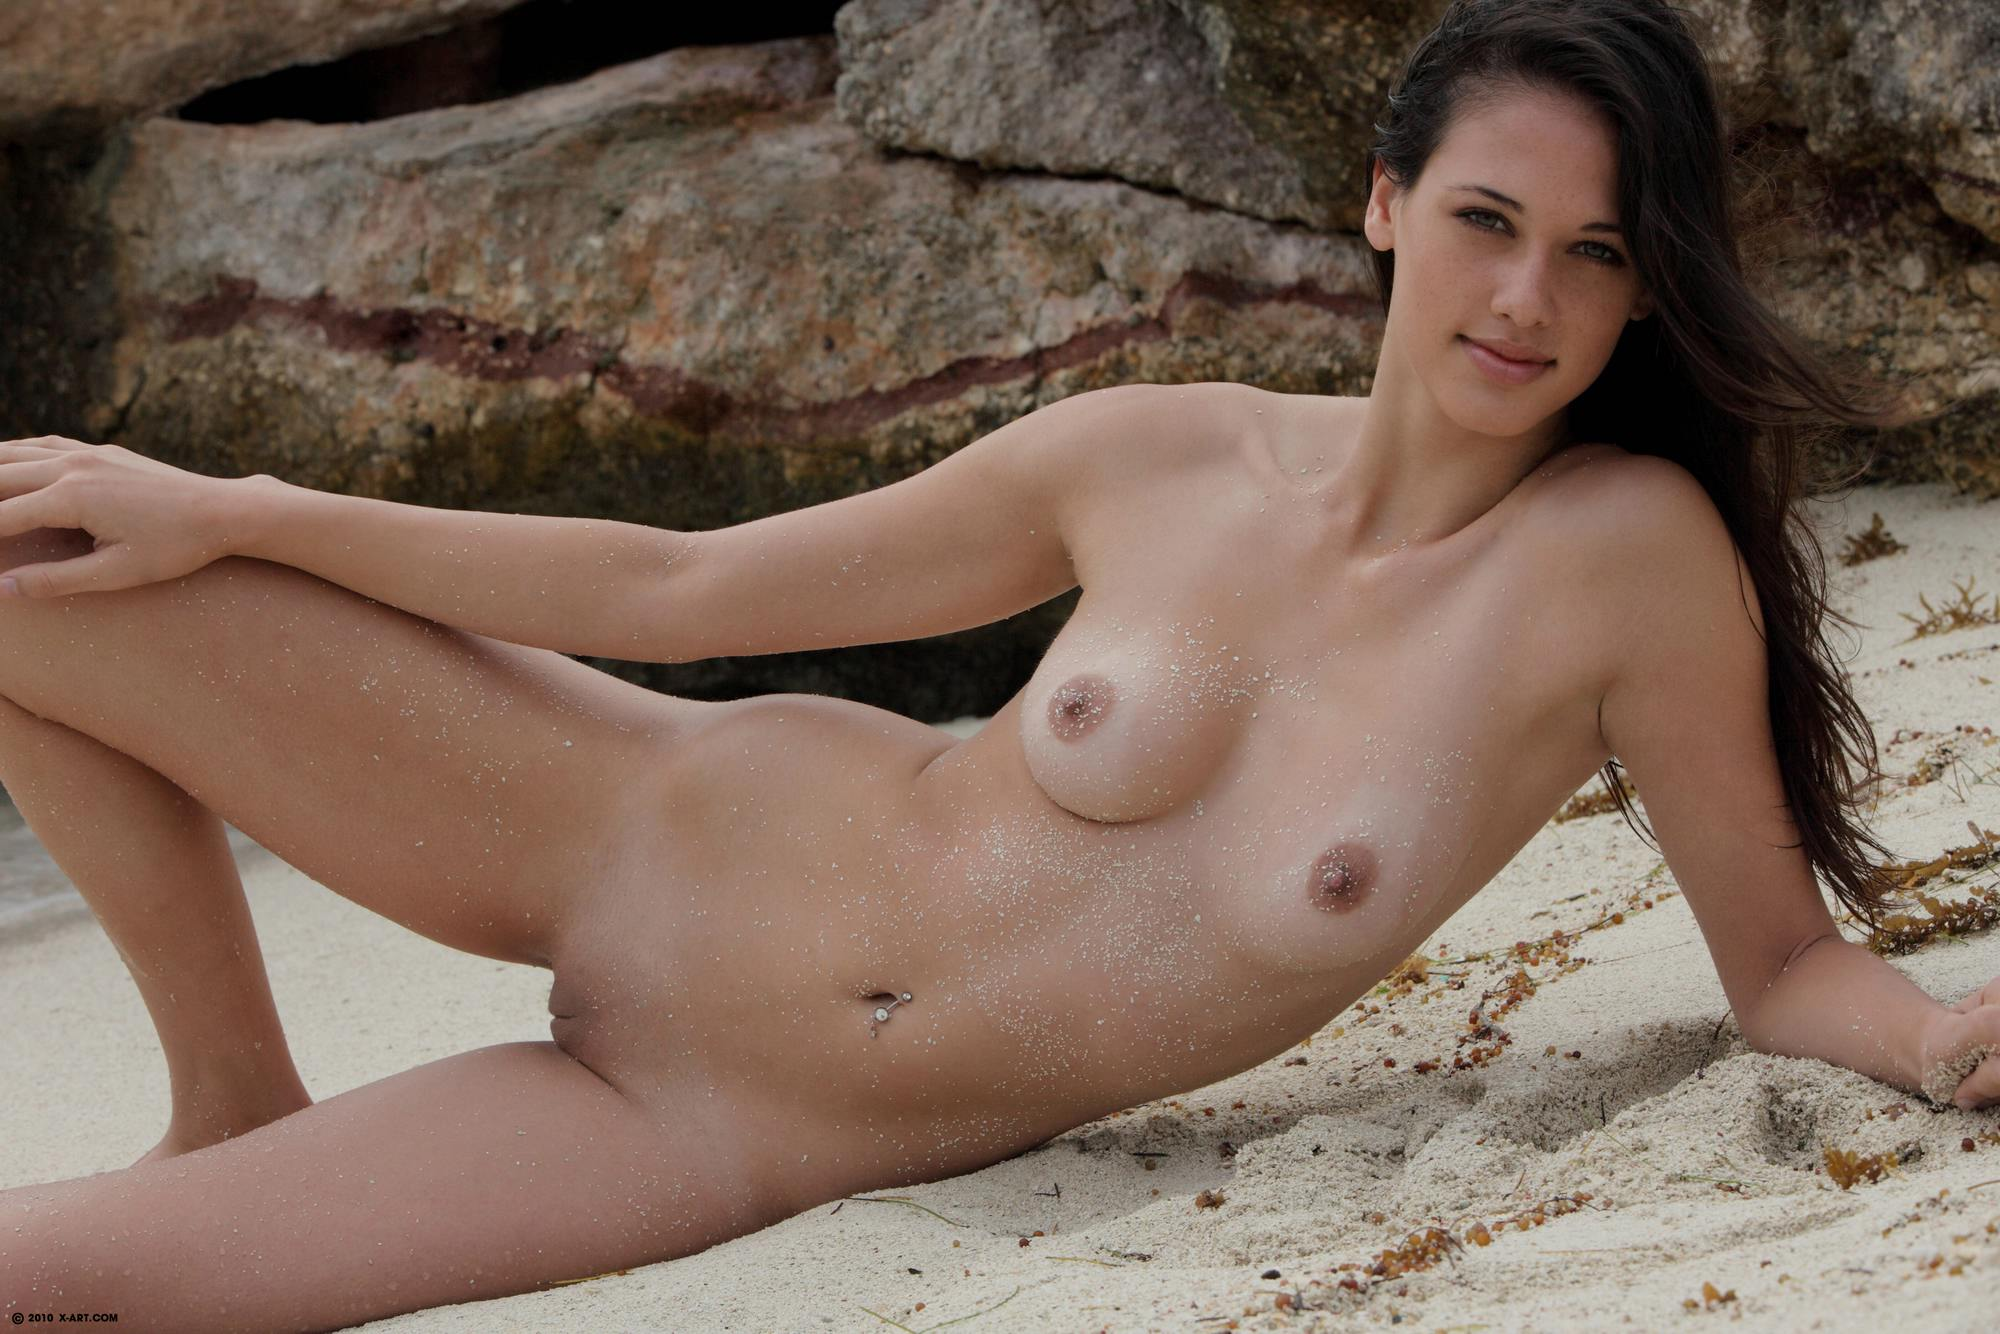 young-girl-european-hot-naked